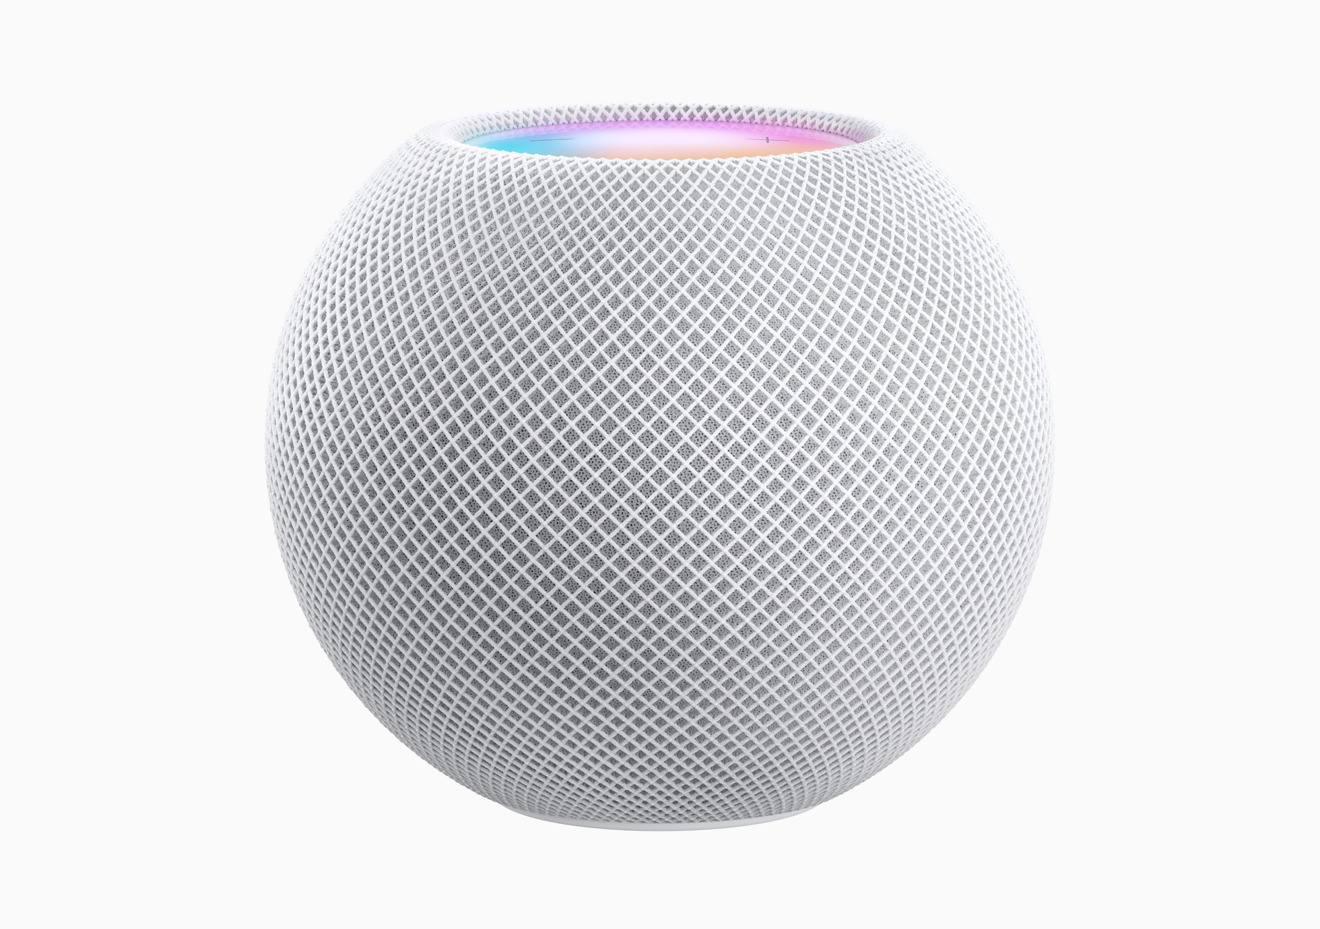 The HomePod mini is spherical, with two cutouts for the screen and to prevent it from rolling away.